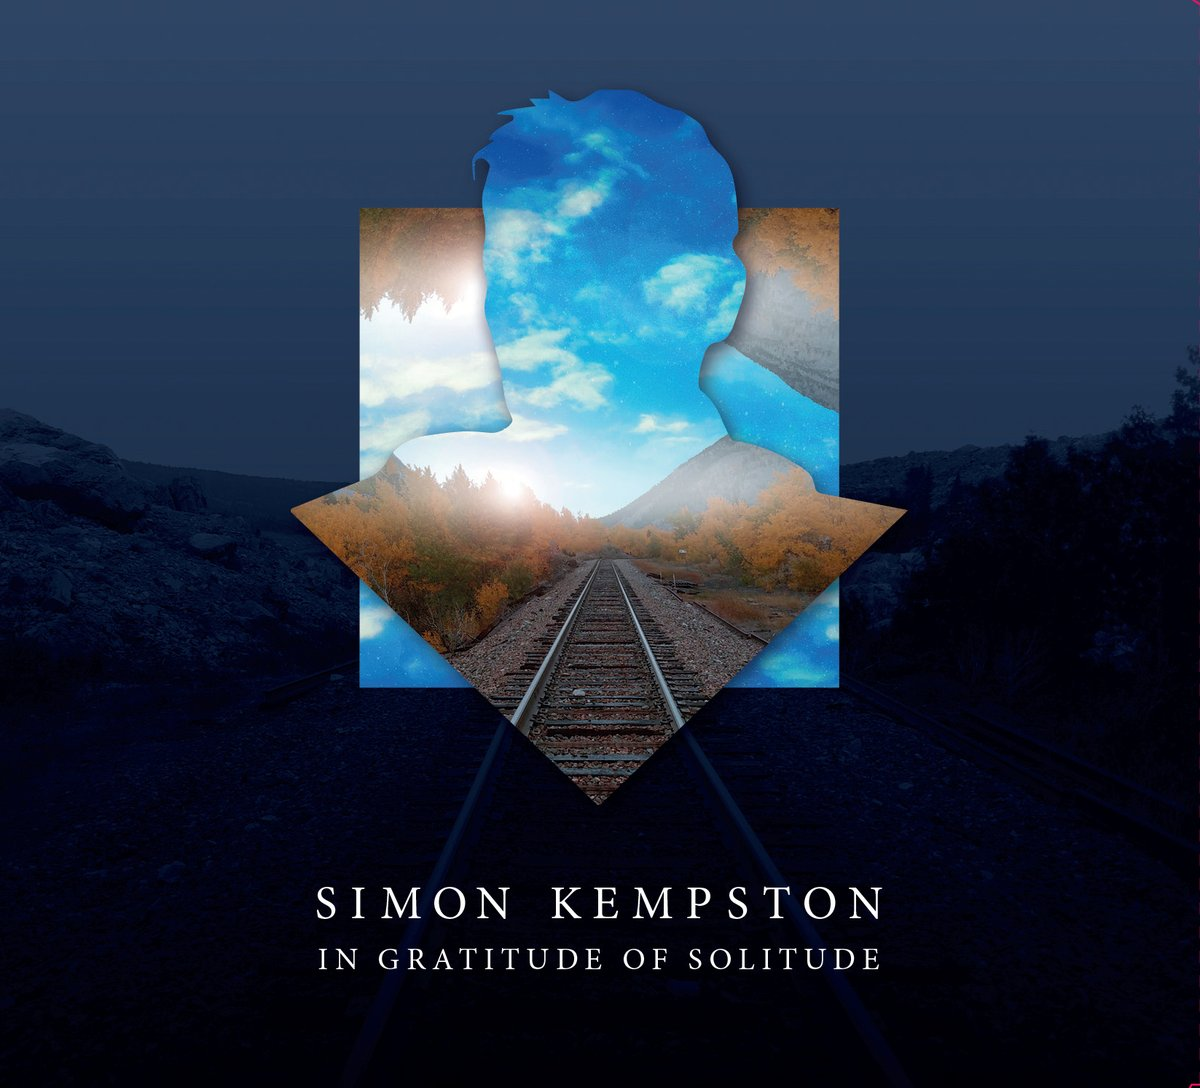 Brand new instrumental guitar album coming soon. SK x #instrumentalguitar #instrumentalmusic #simonkempston #acousticmusic #acousticguitar #newalbum <br>http://pic.twitter.com/foVvqdLBUS